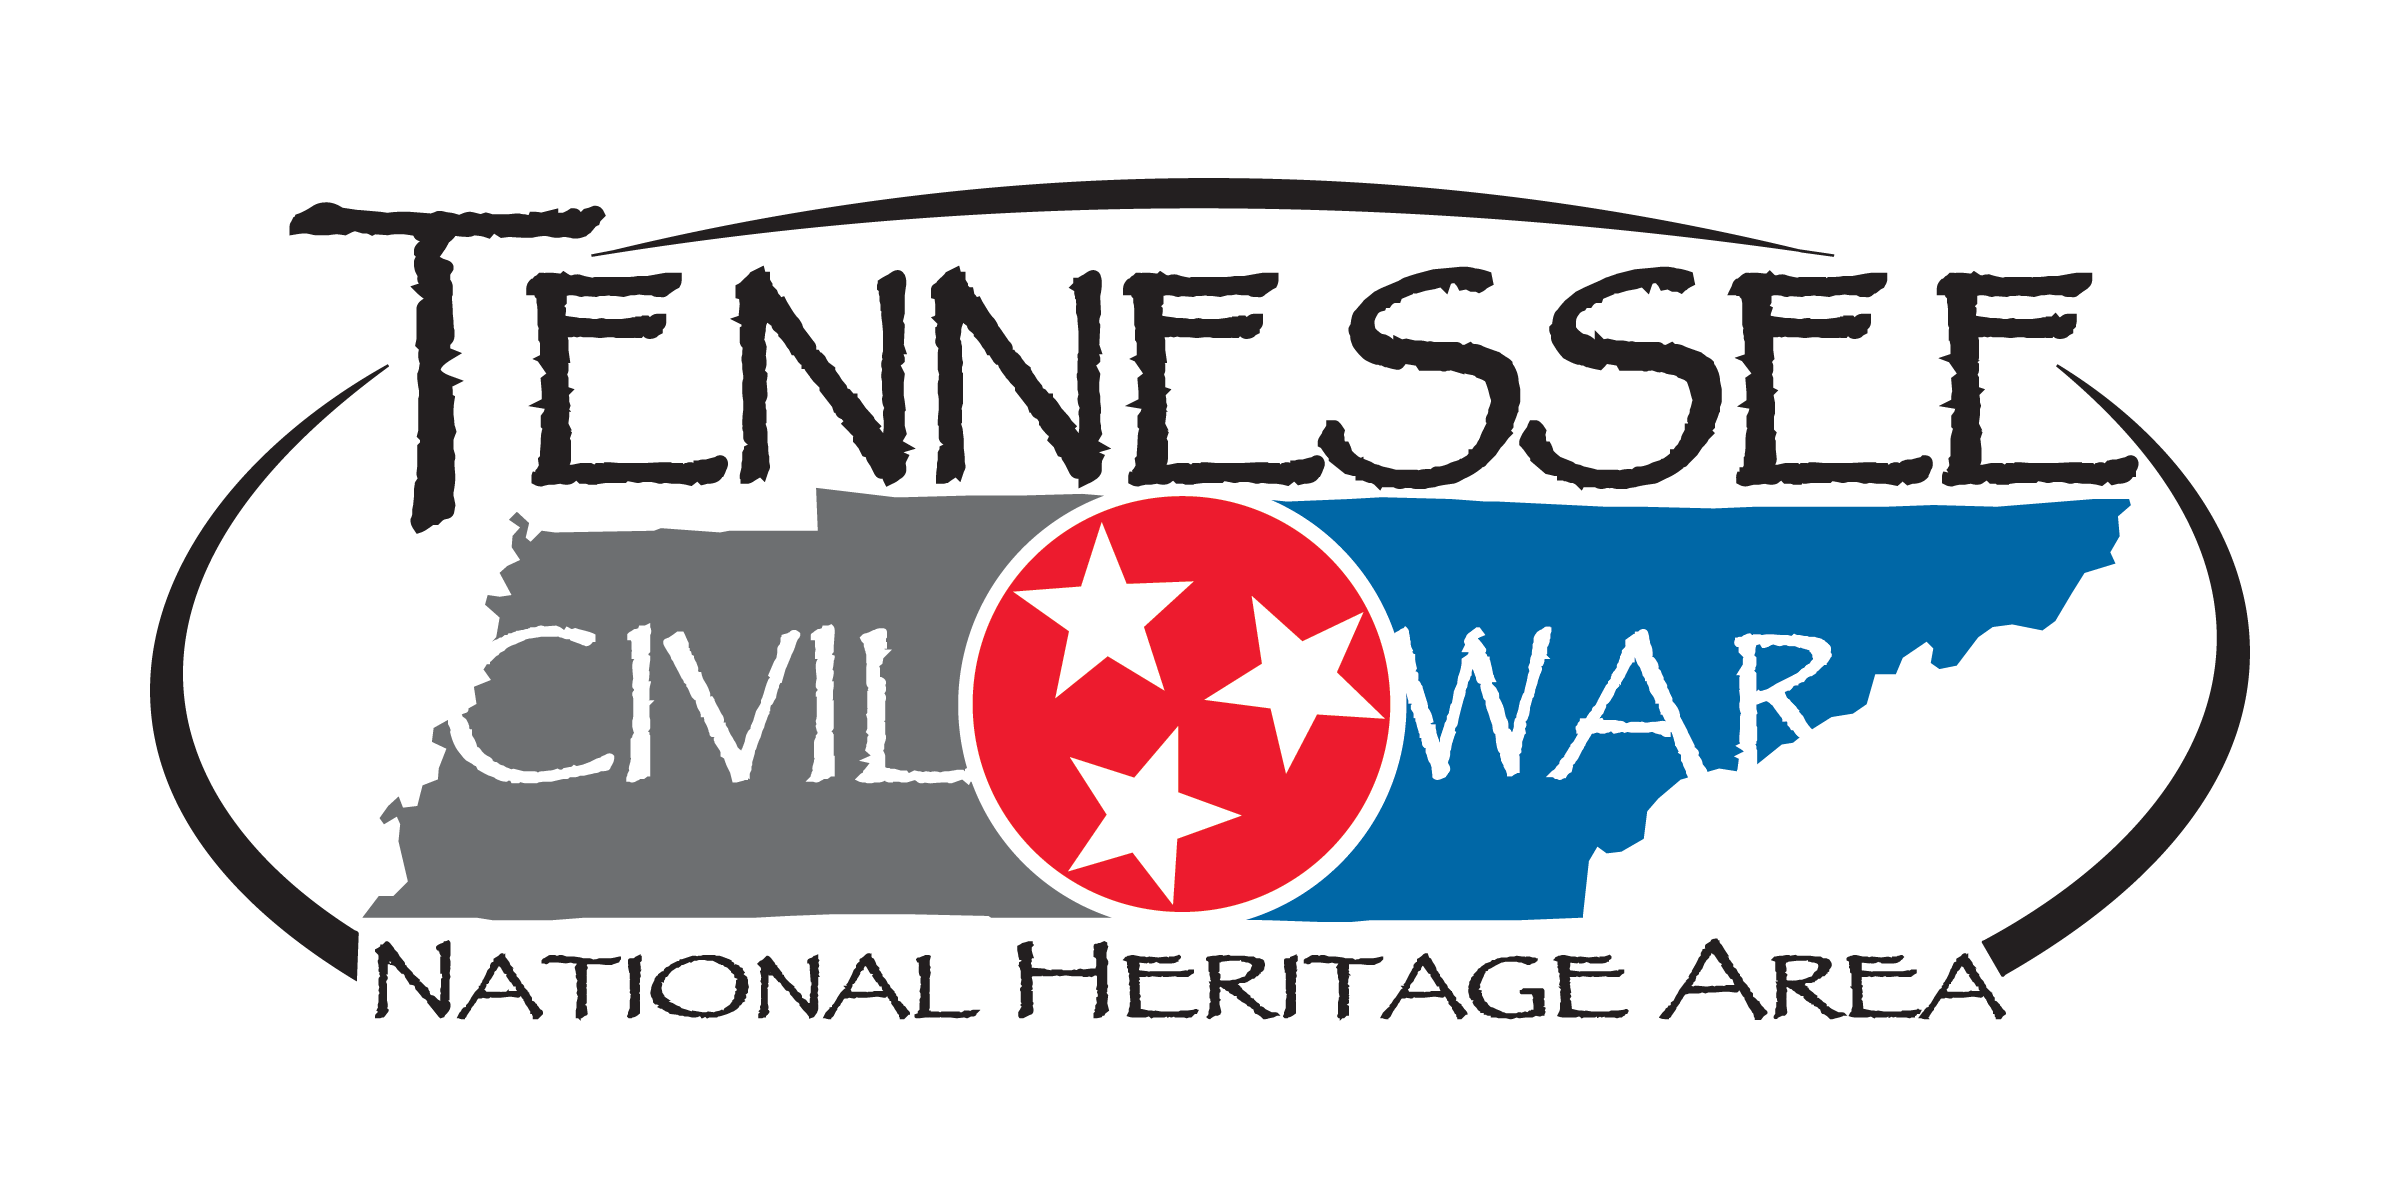 The Tennessee Civil War National Heritage Area